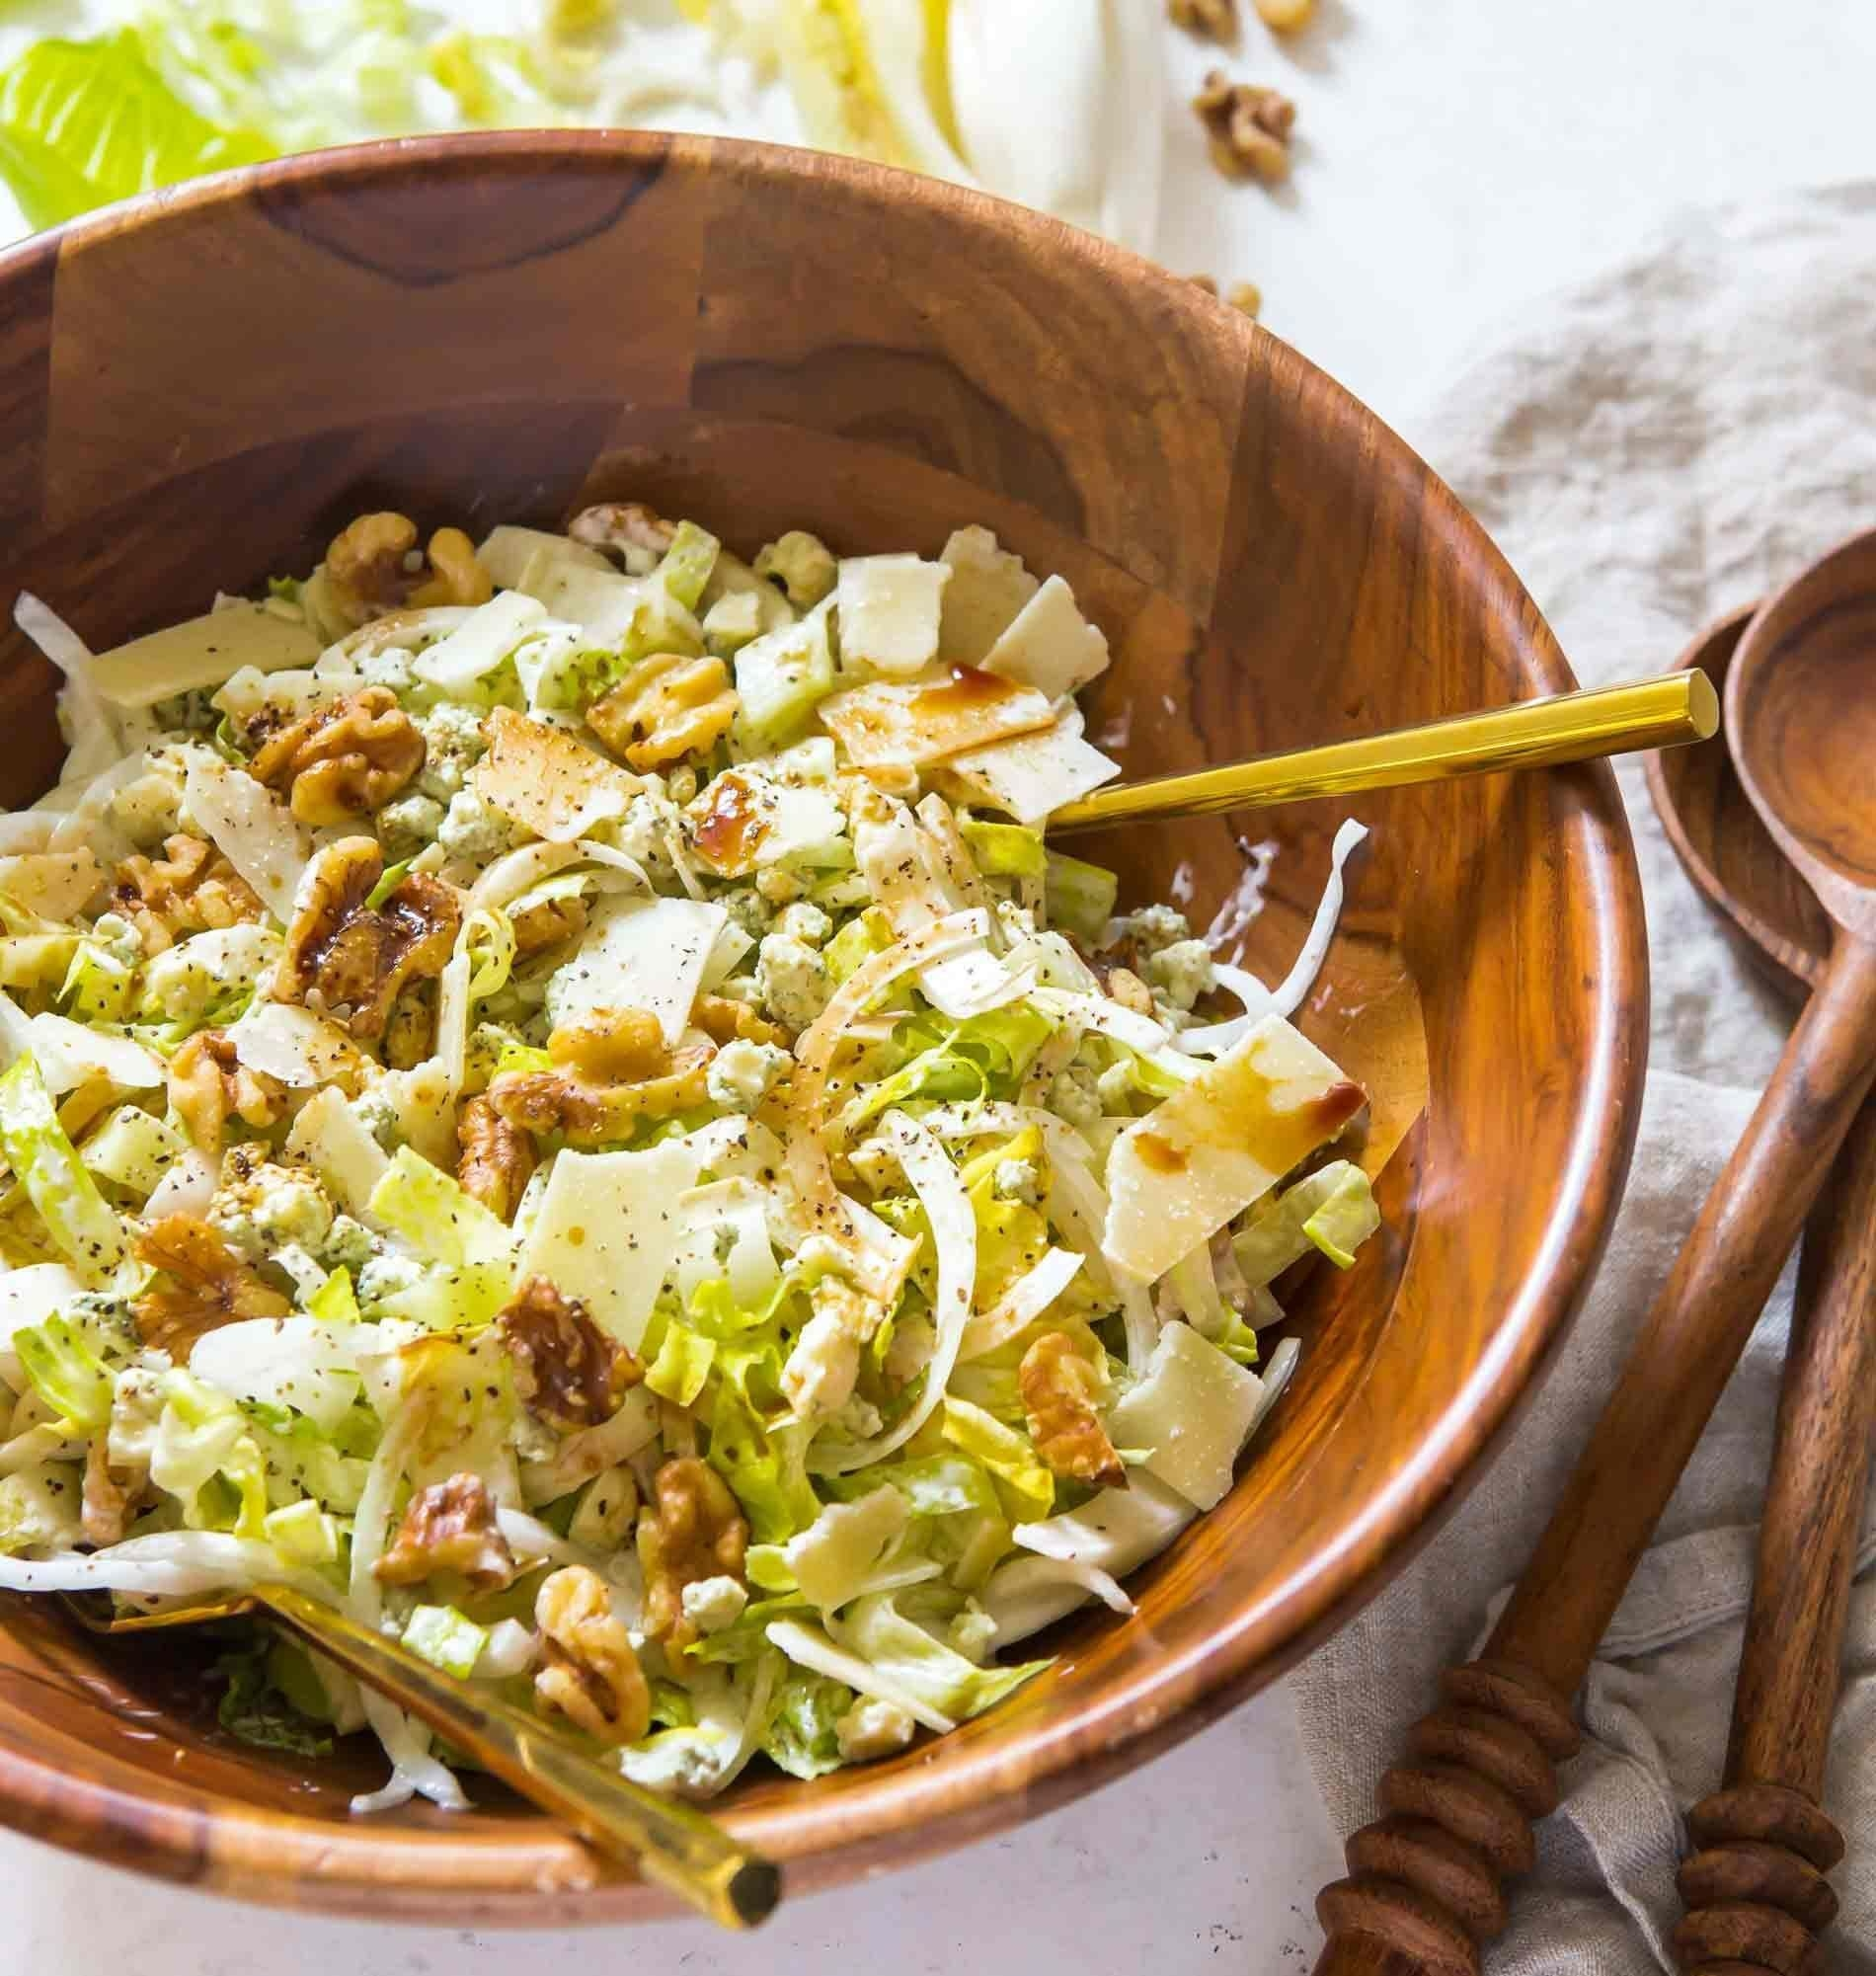 A romaine salad with walnuts, Parmesan, and endive.